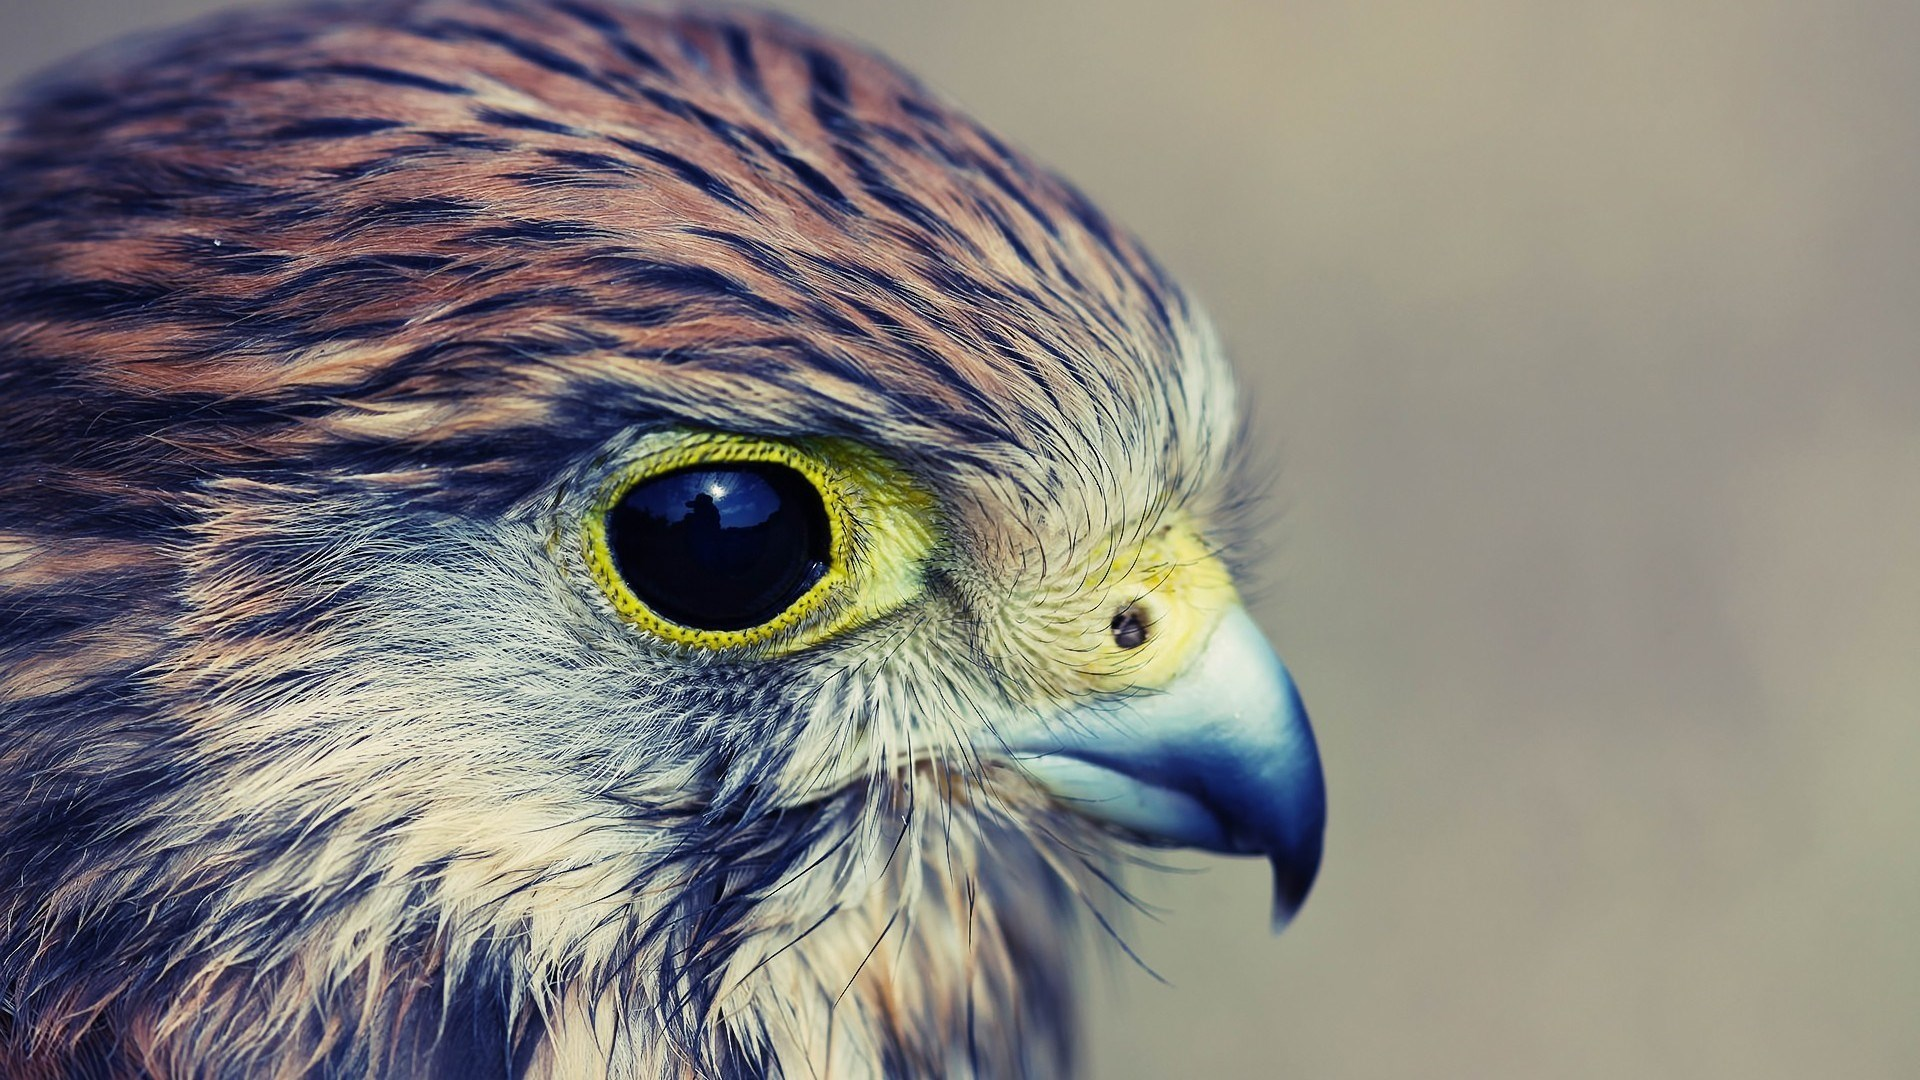 Bird of Prey Hawk Close-Up